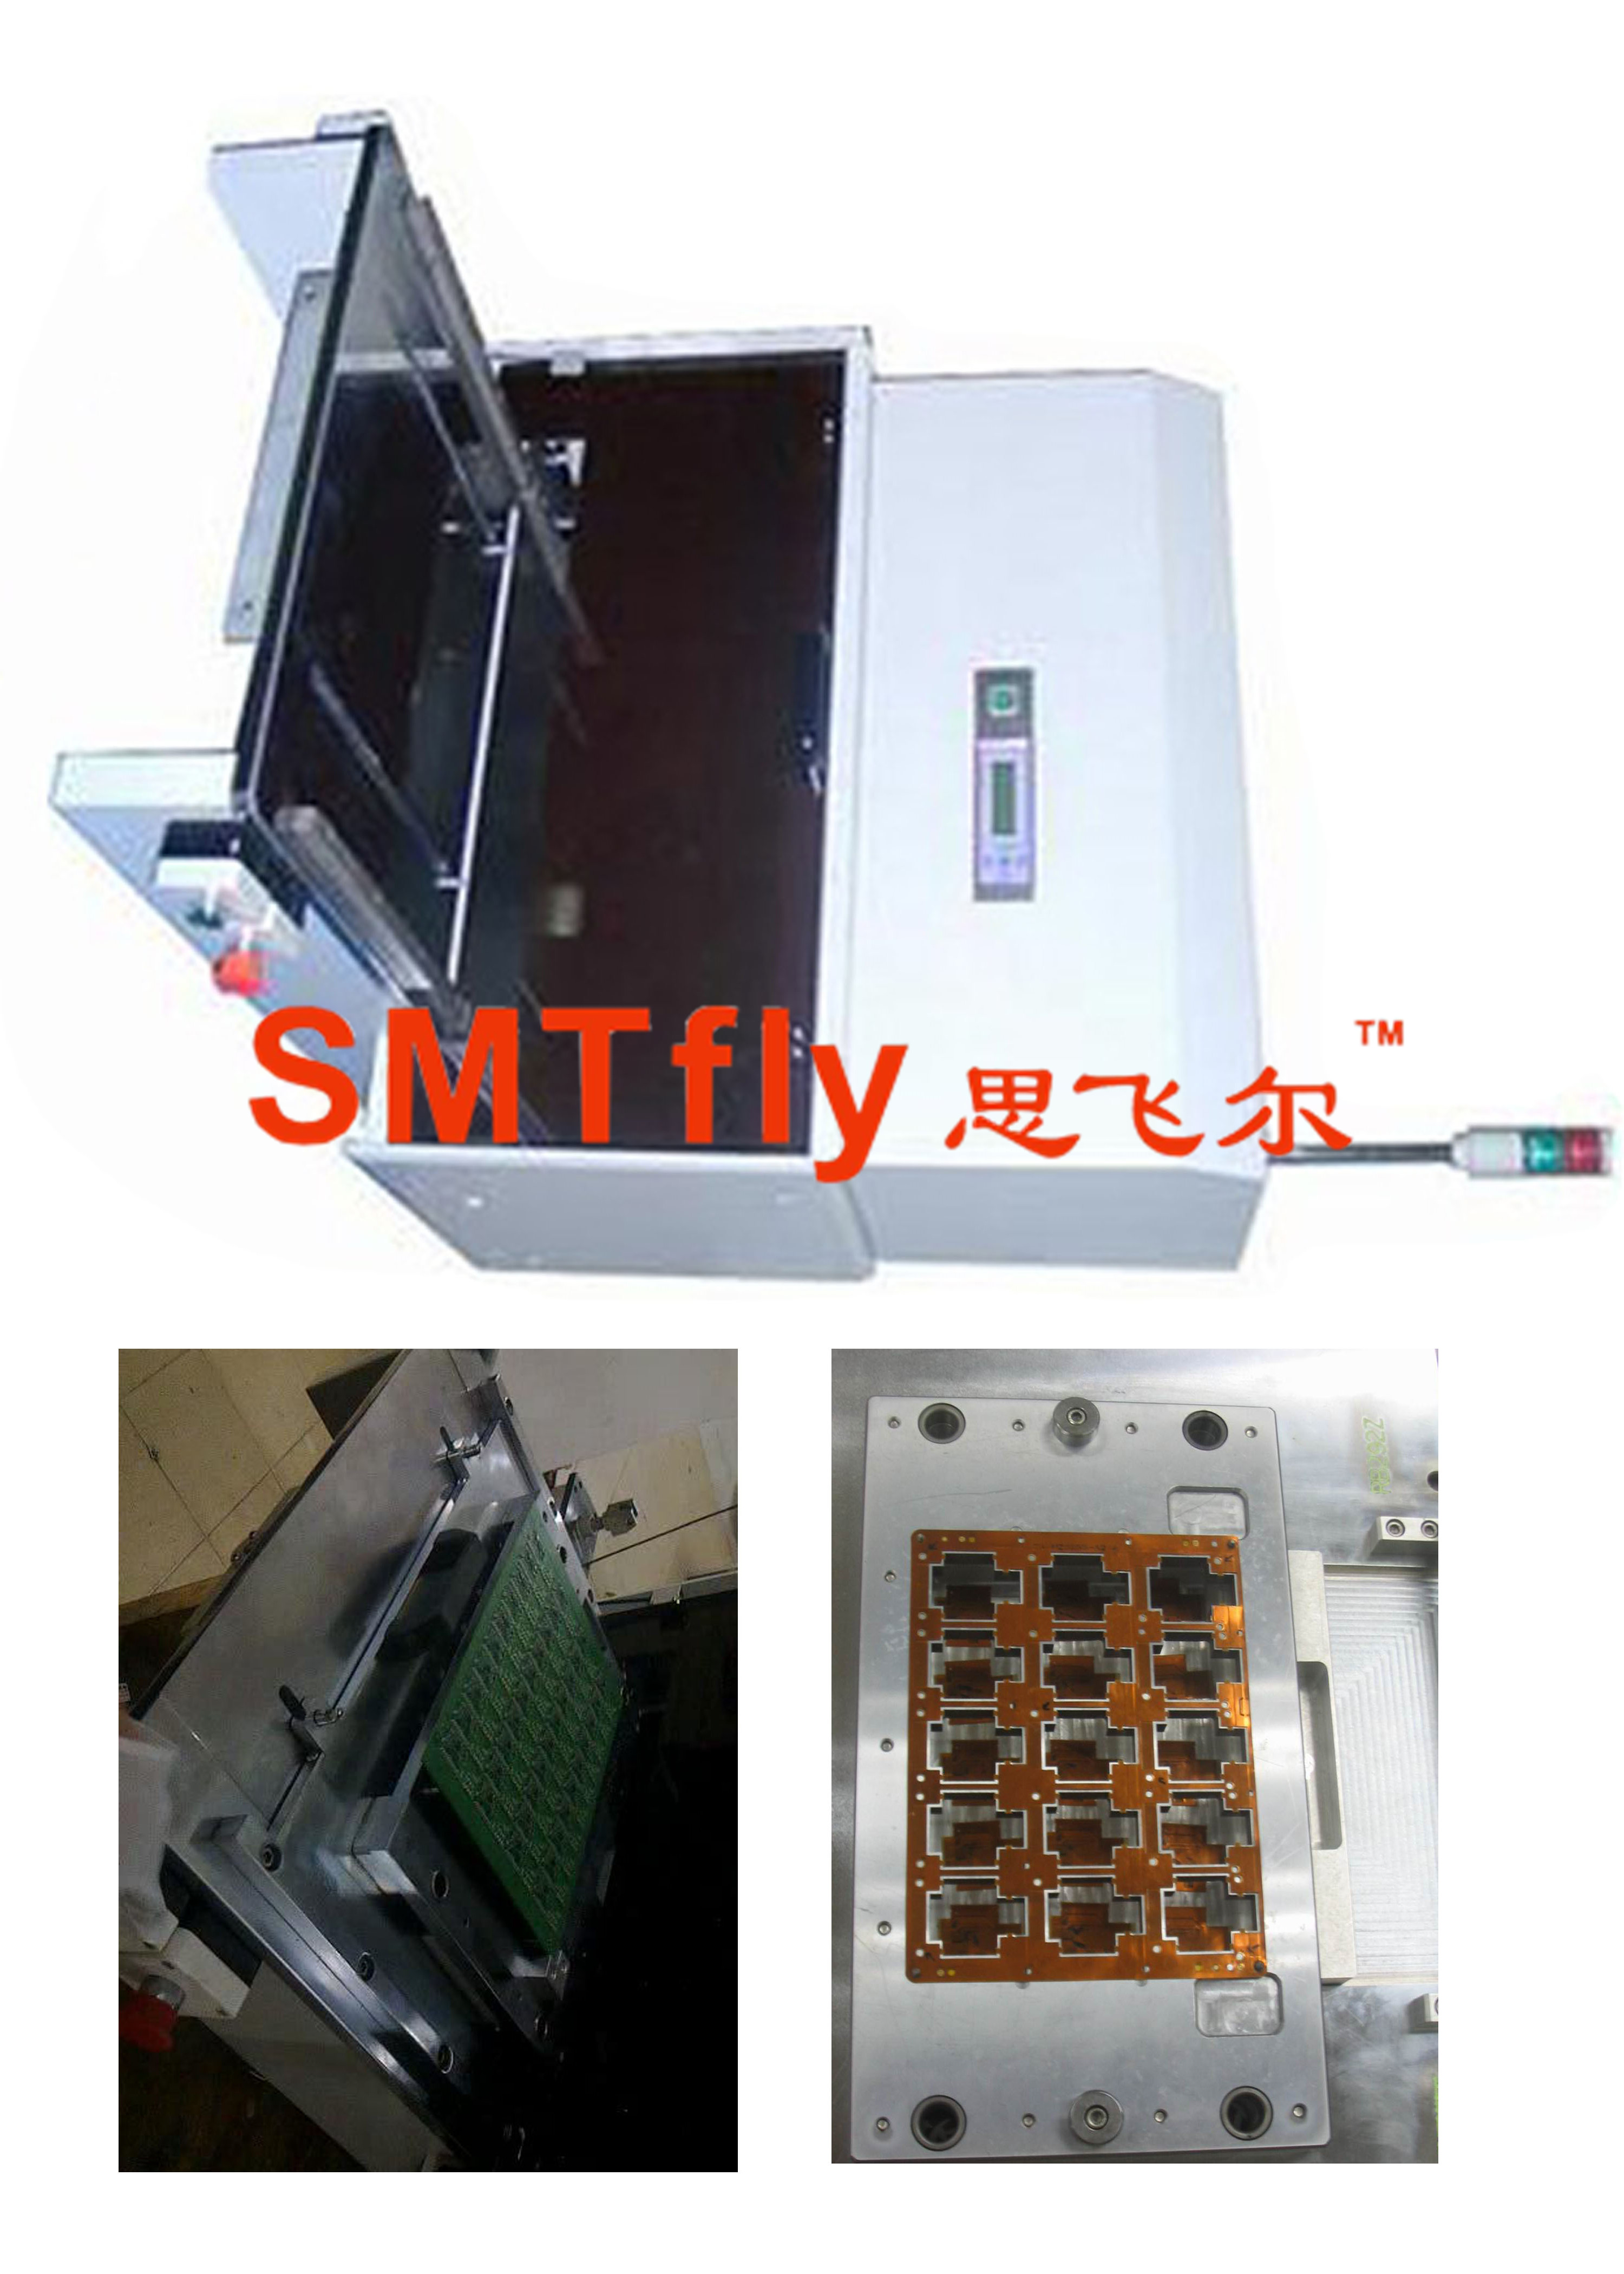 PCB Punching Machine,Stencil Cutters,SMTfly-PL